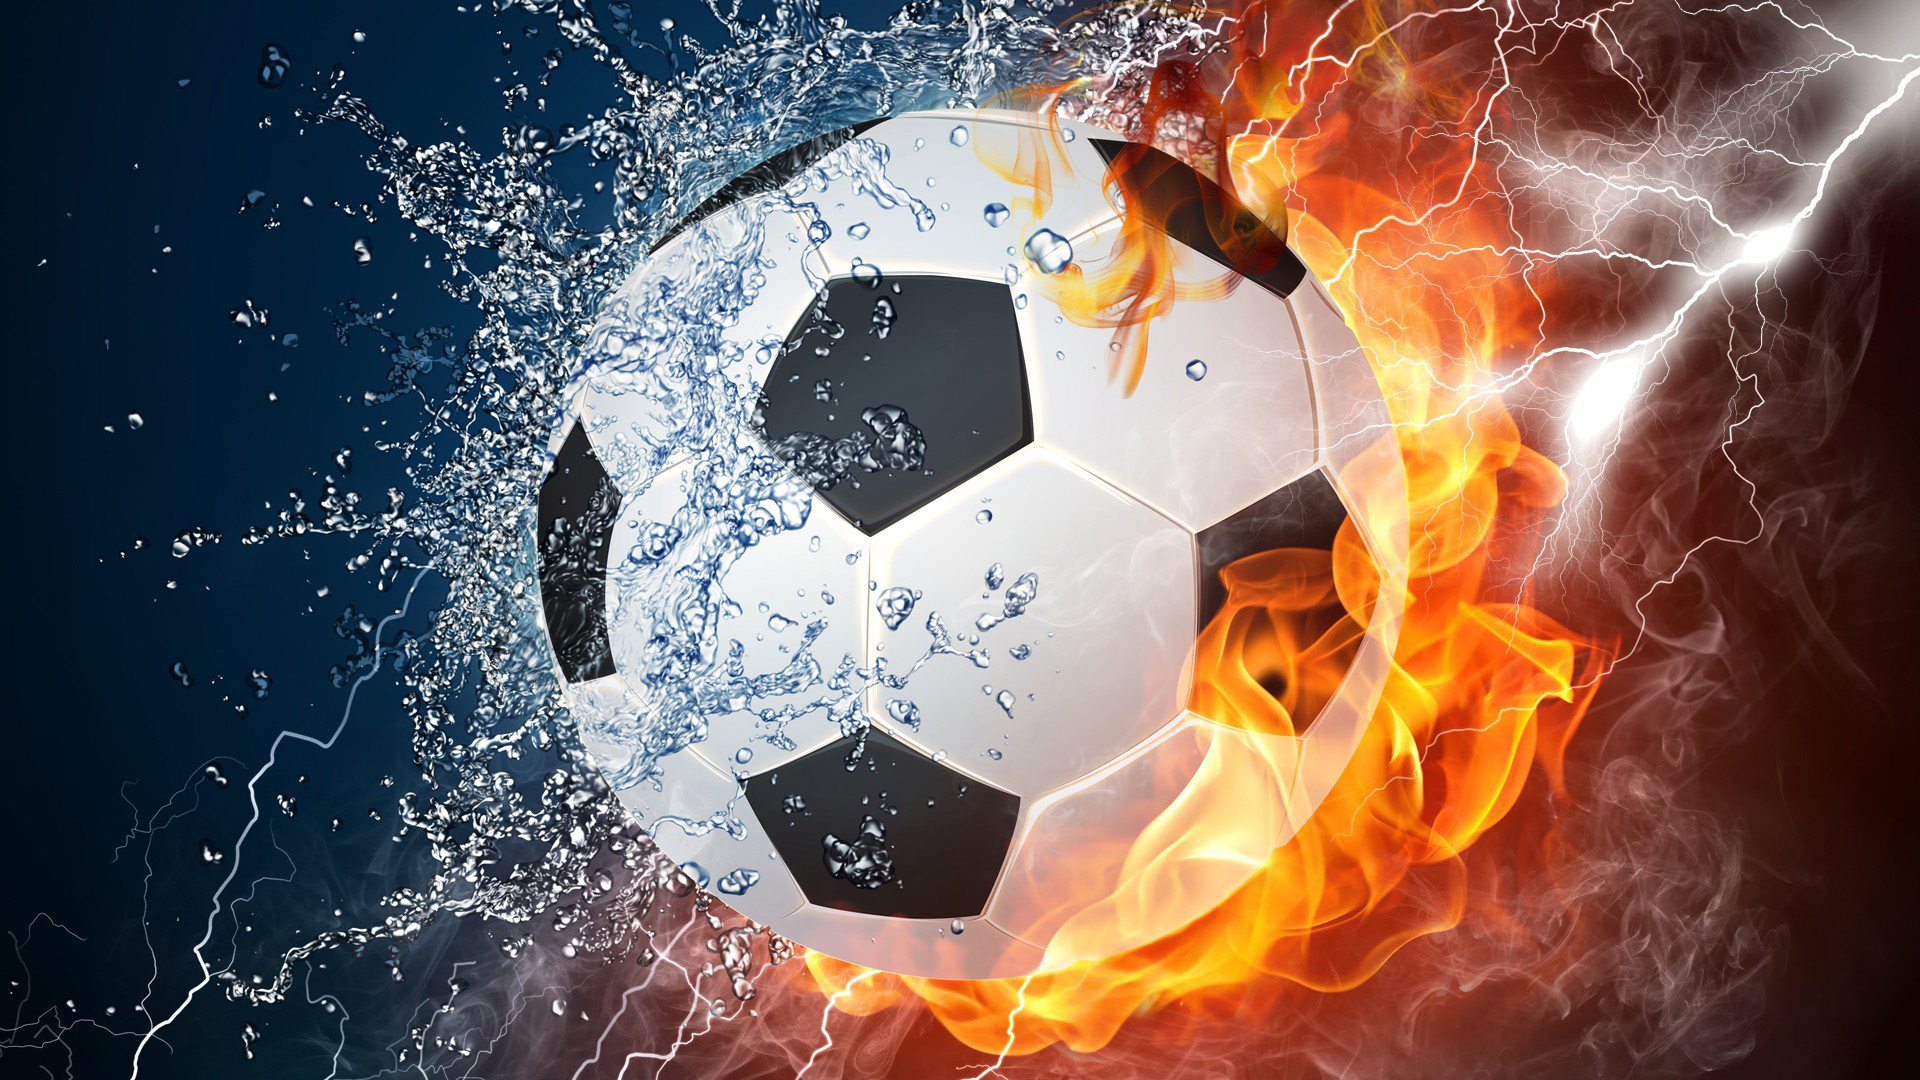 Football Soccer Wallpapers Group Cool Soccer Backgrounds 1920x1080 Wallpaper Teahub Io